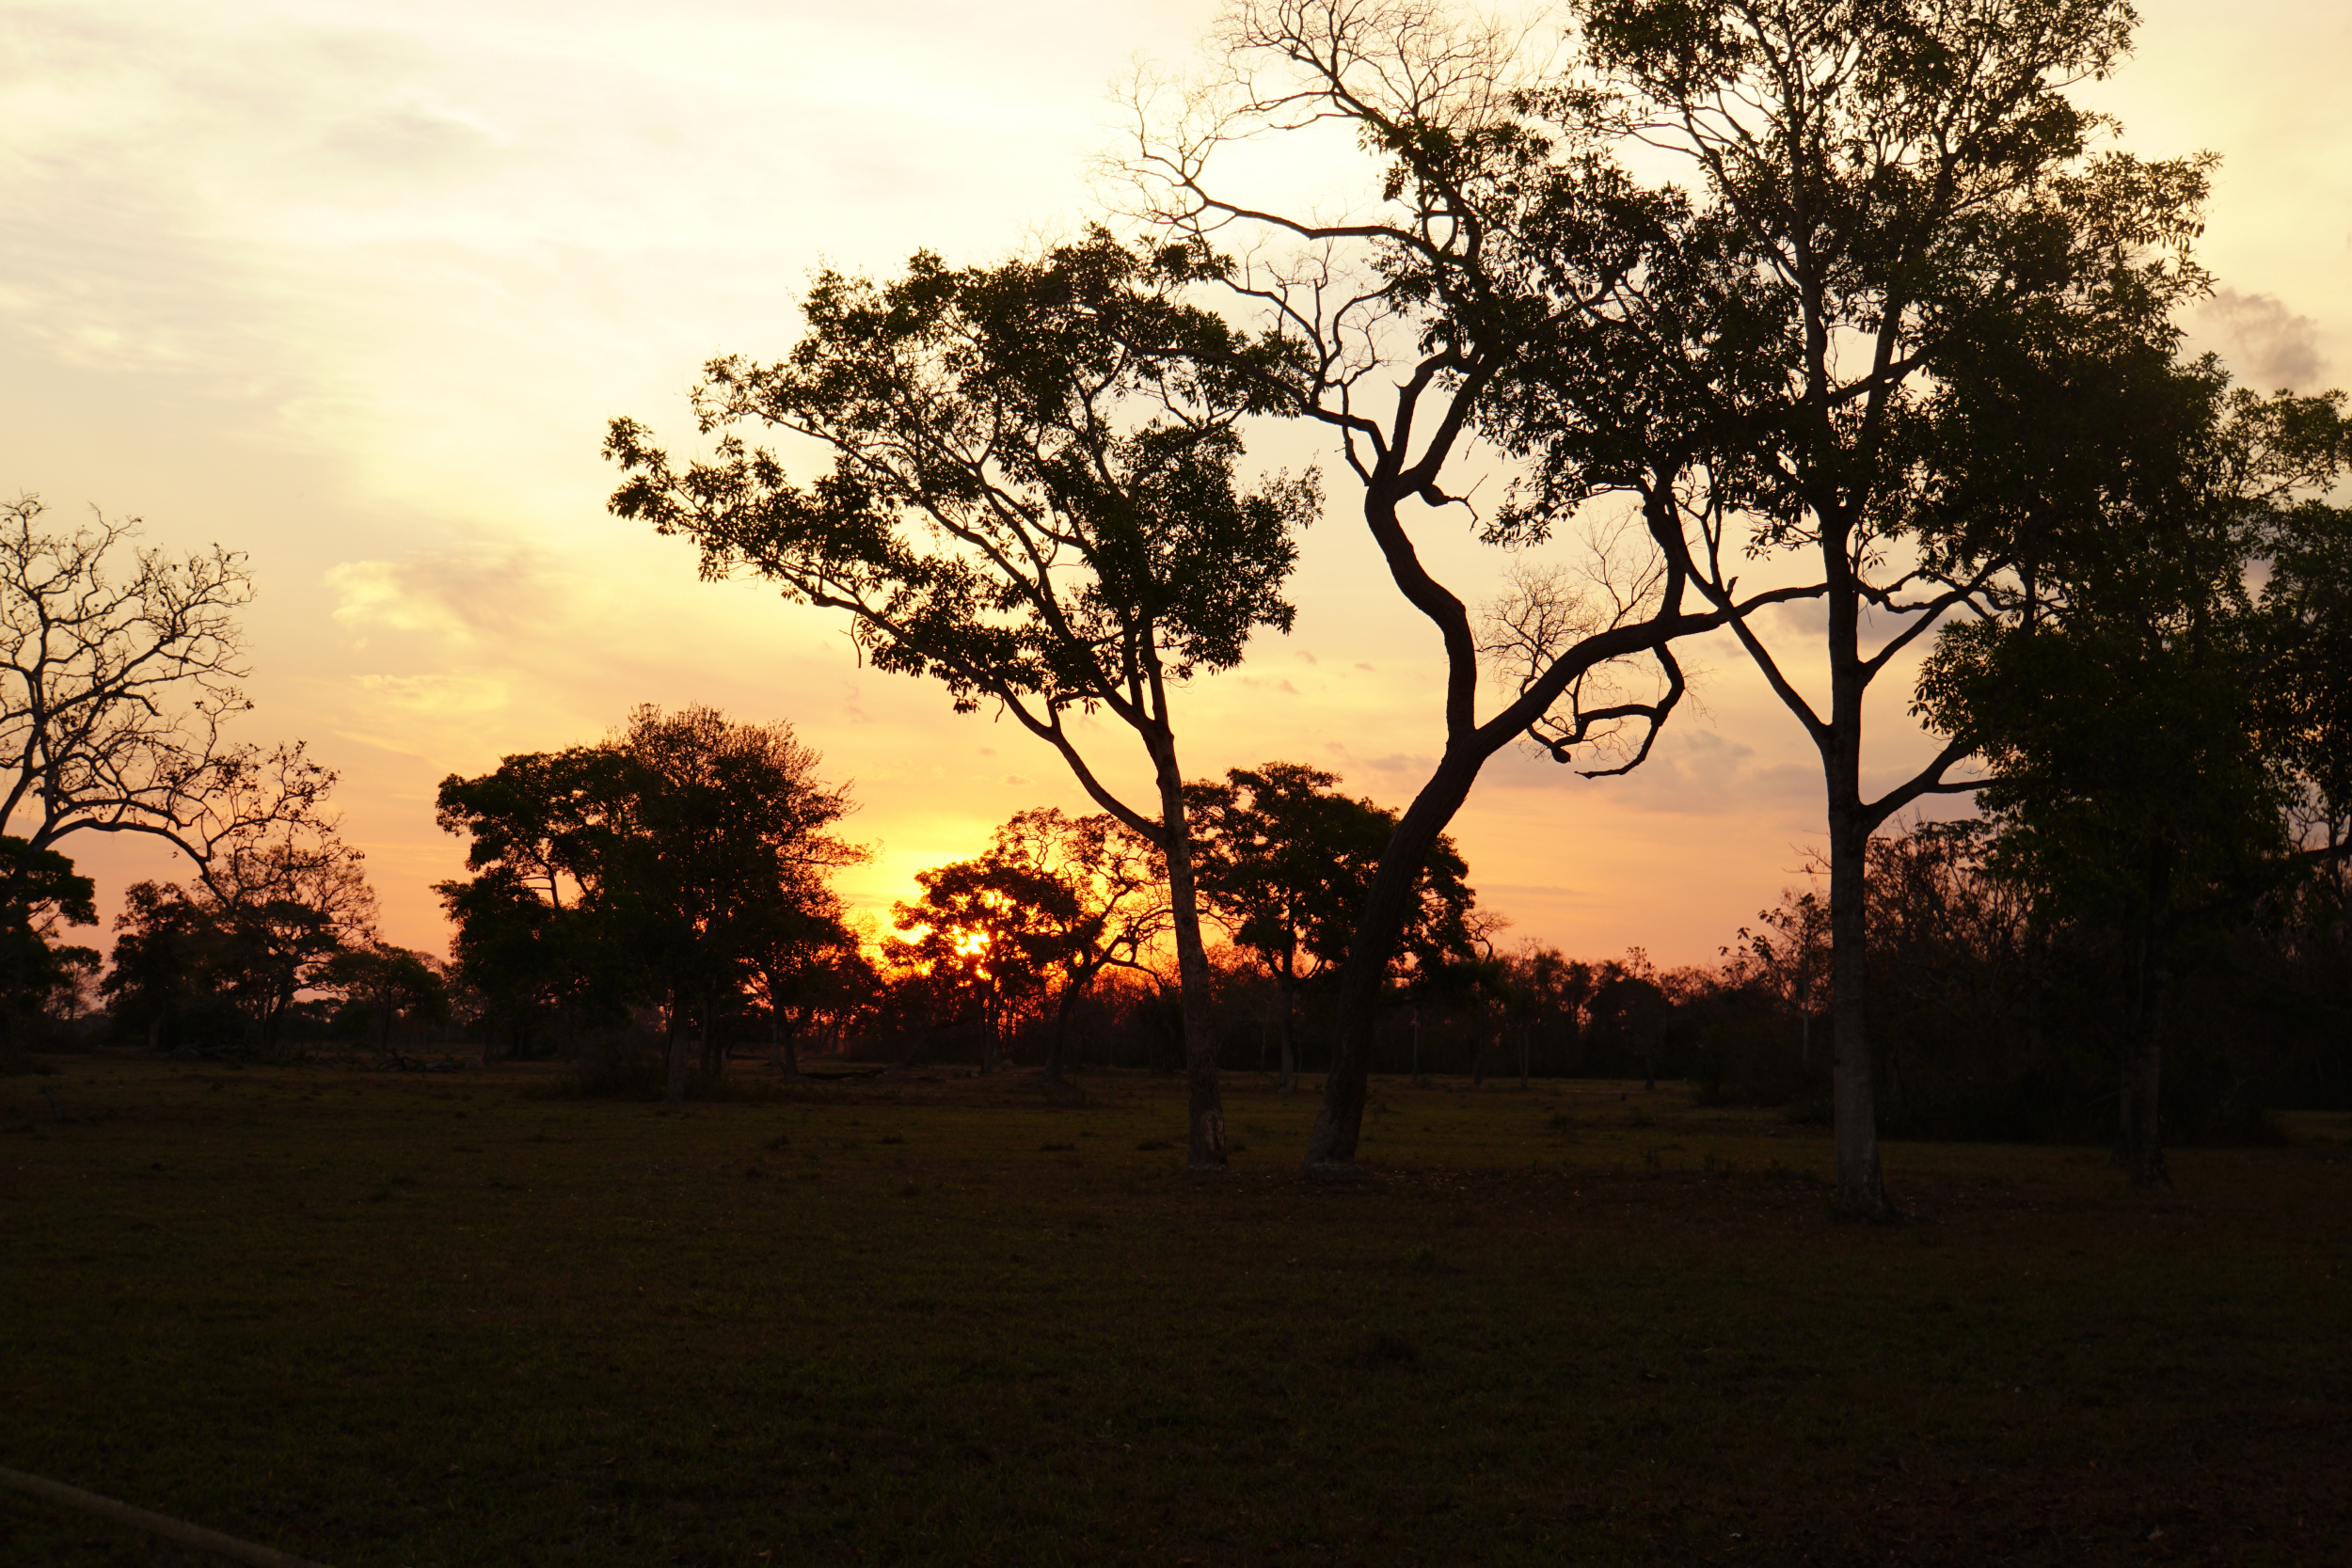 35. Sunset in the Pantanal